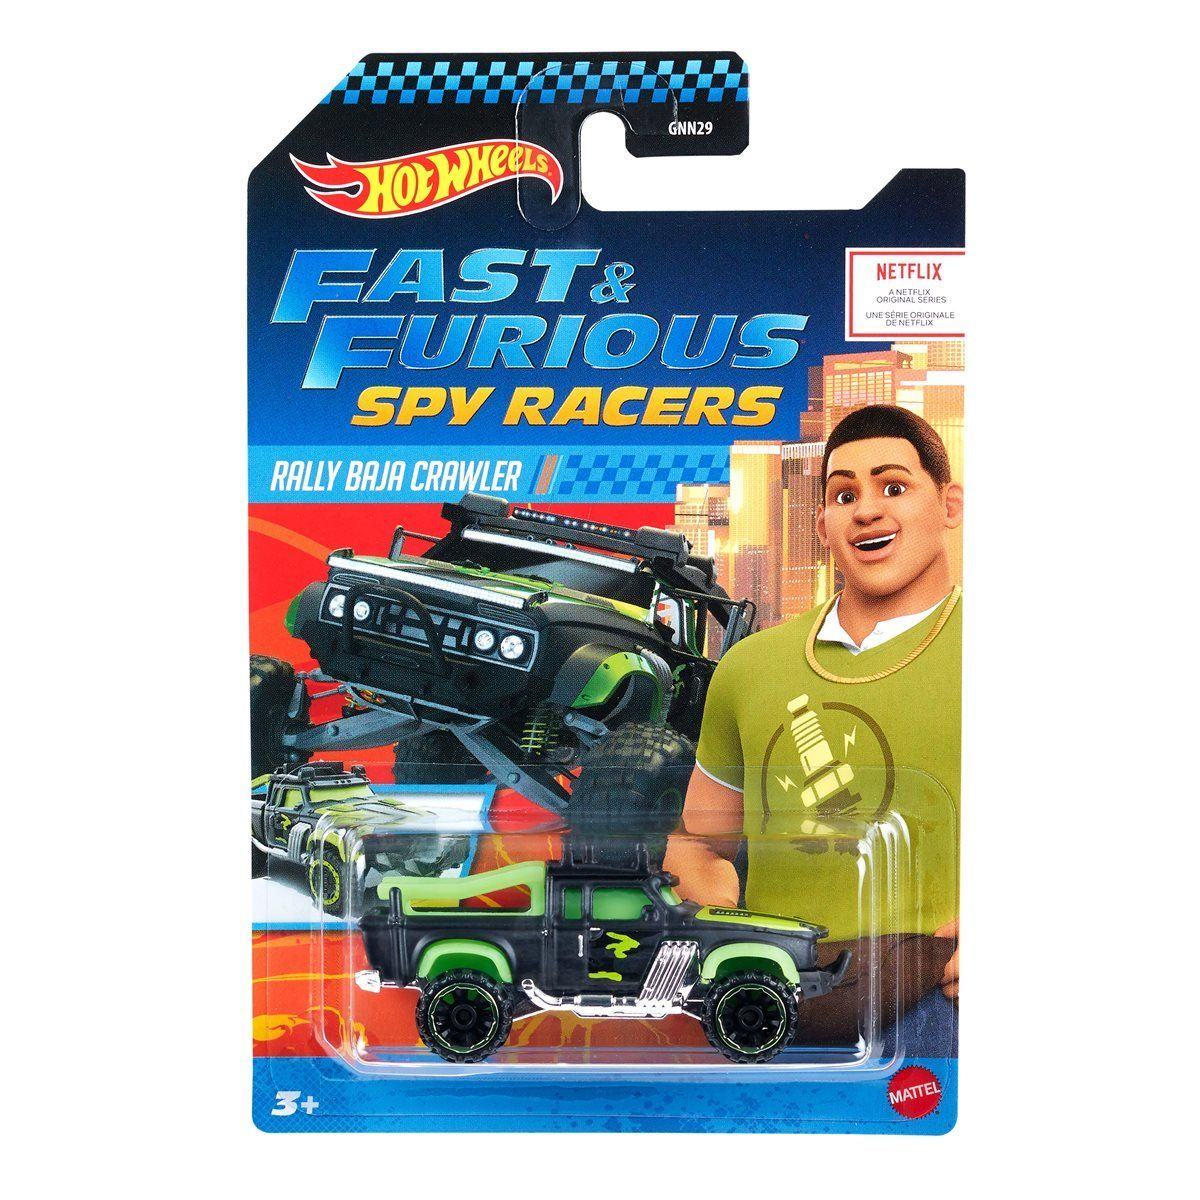 Fast Furious Spy Racers Hot Wheels Mix 1 2020 Vehicle Case Hot Wheels Hot Wheels Track Fast And Furious